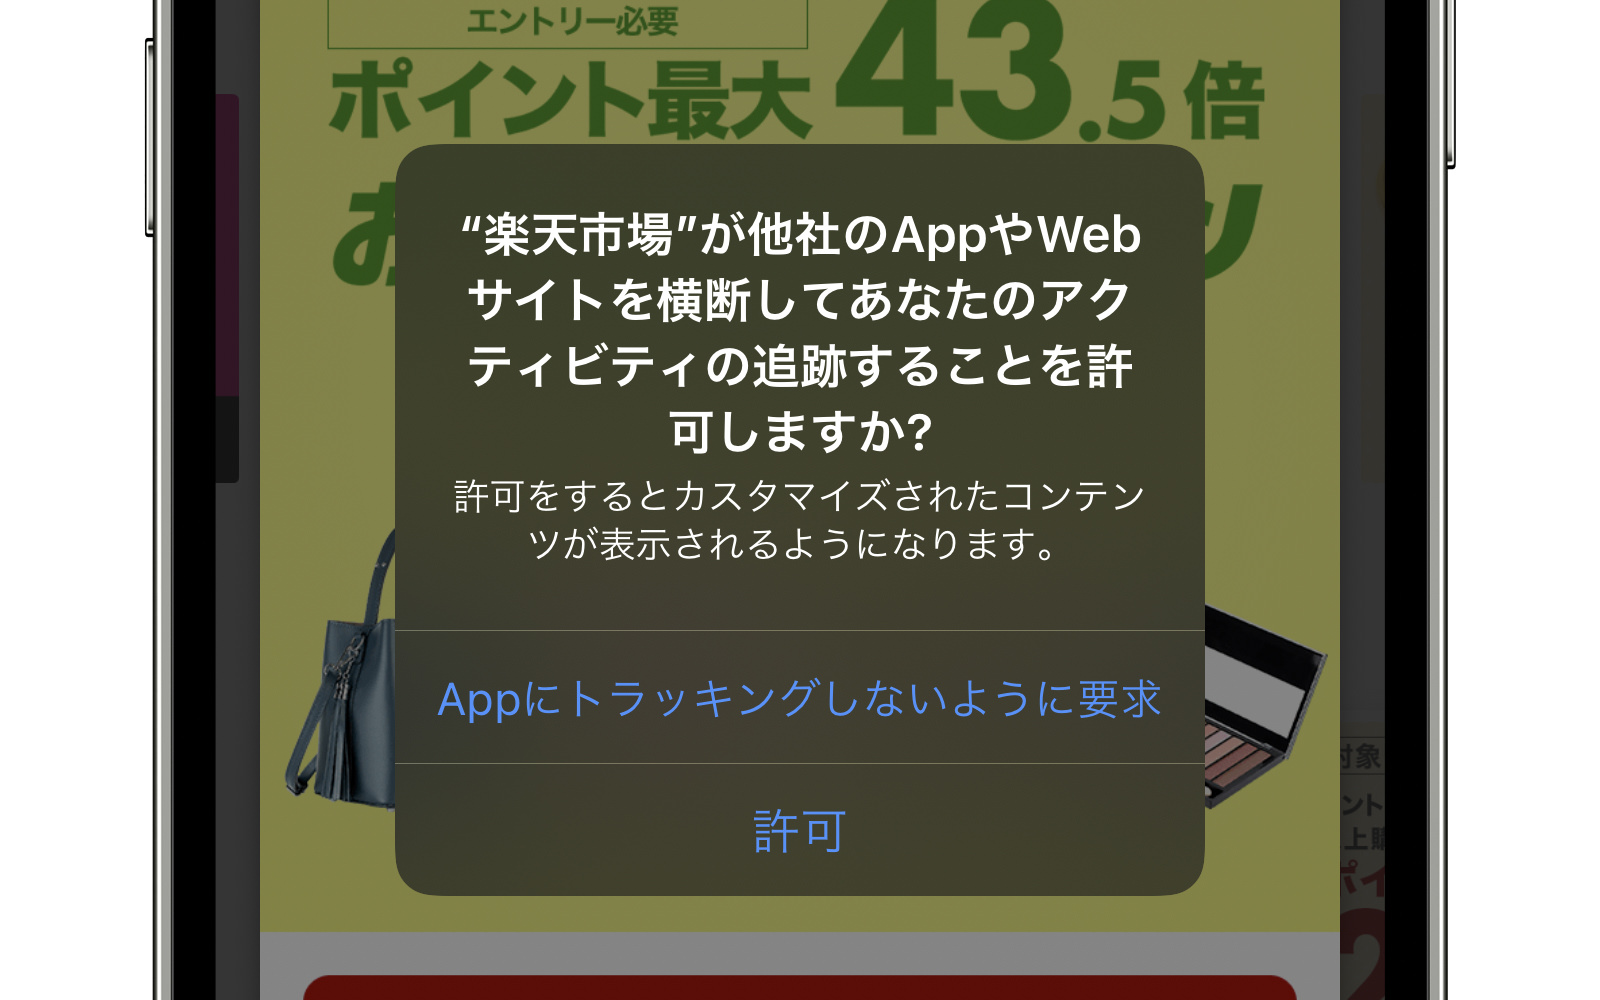 App tracking for iphone